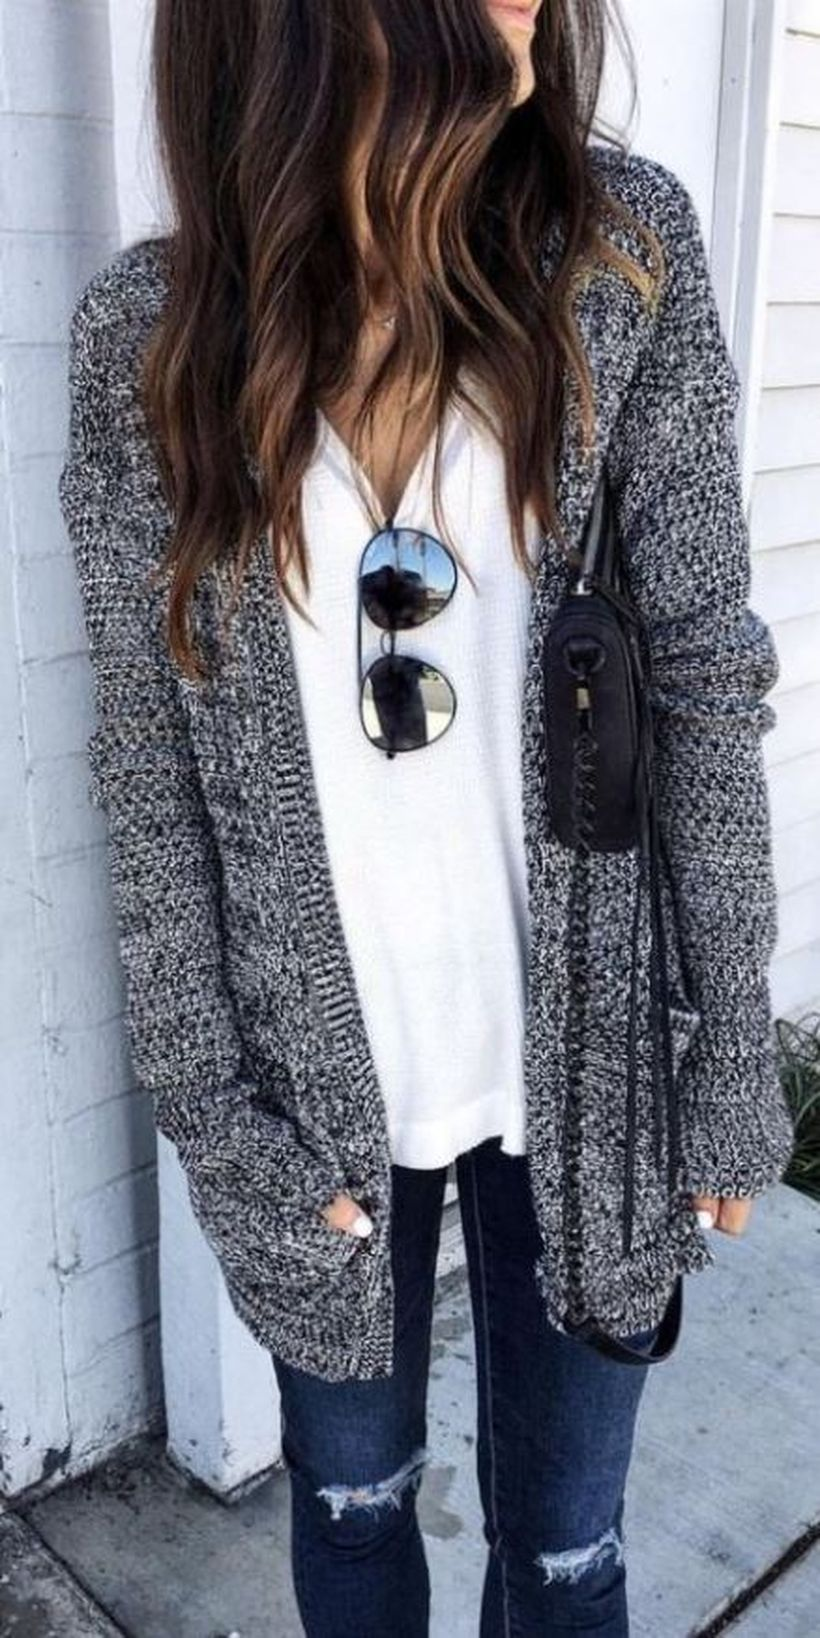 Fashionable outfit style for winter 2017 69